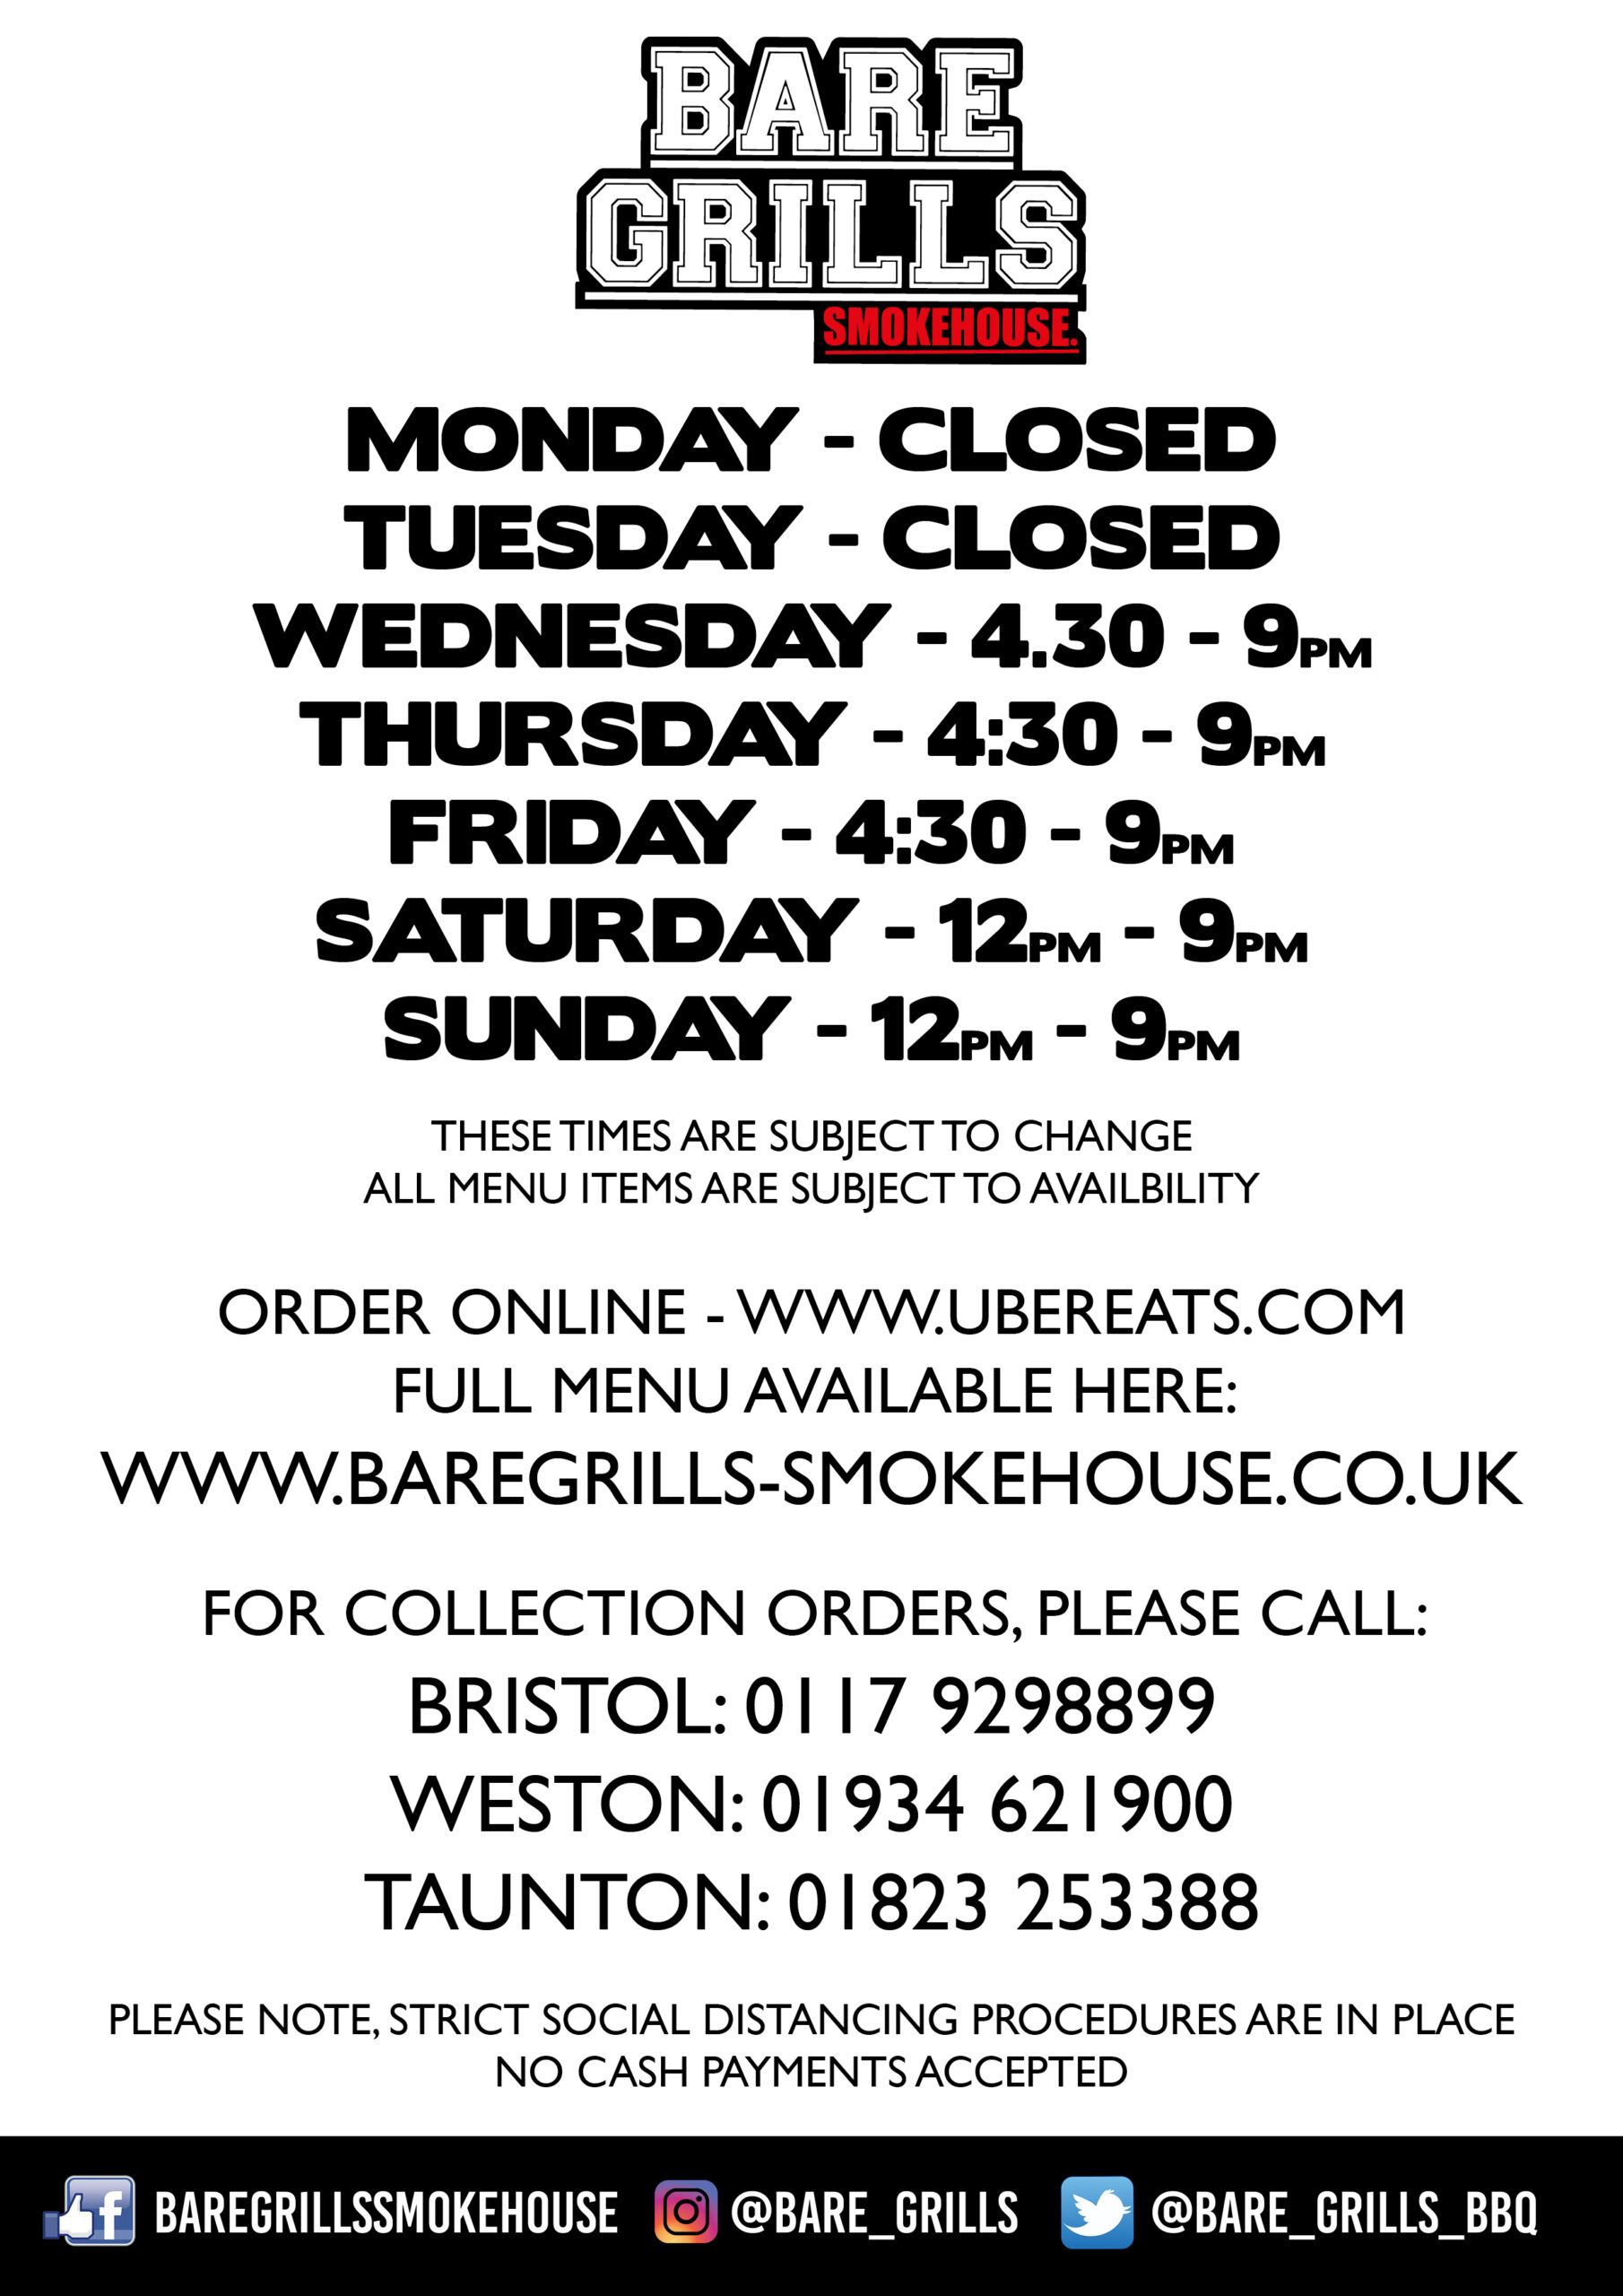 OPENING HOURS COLLECTION ONLY